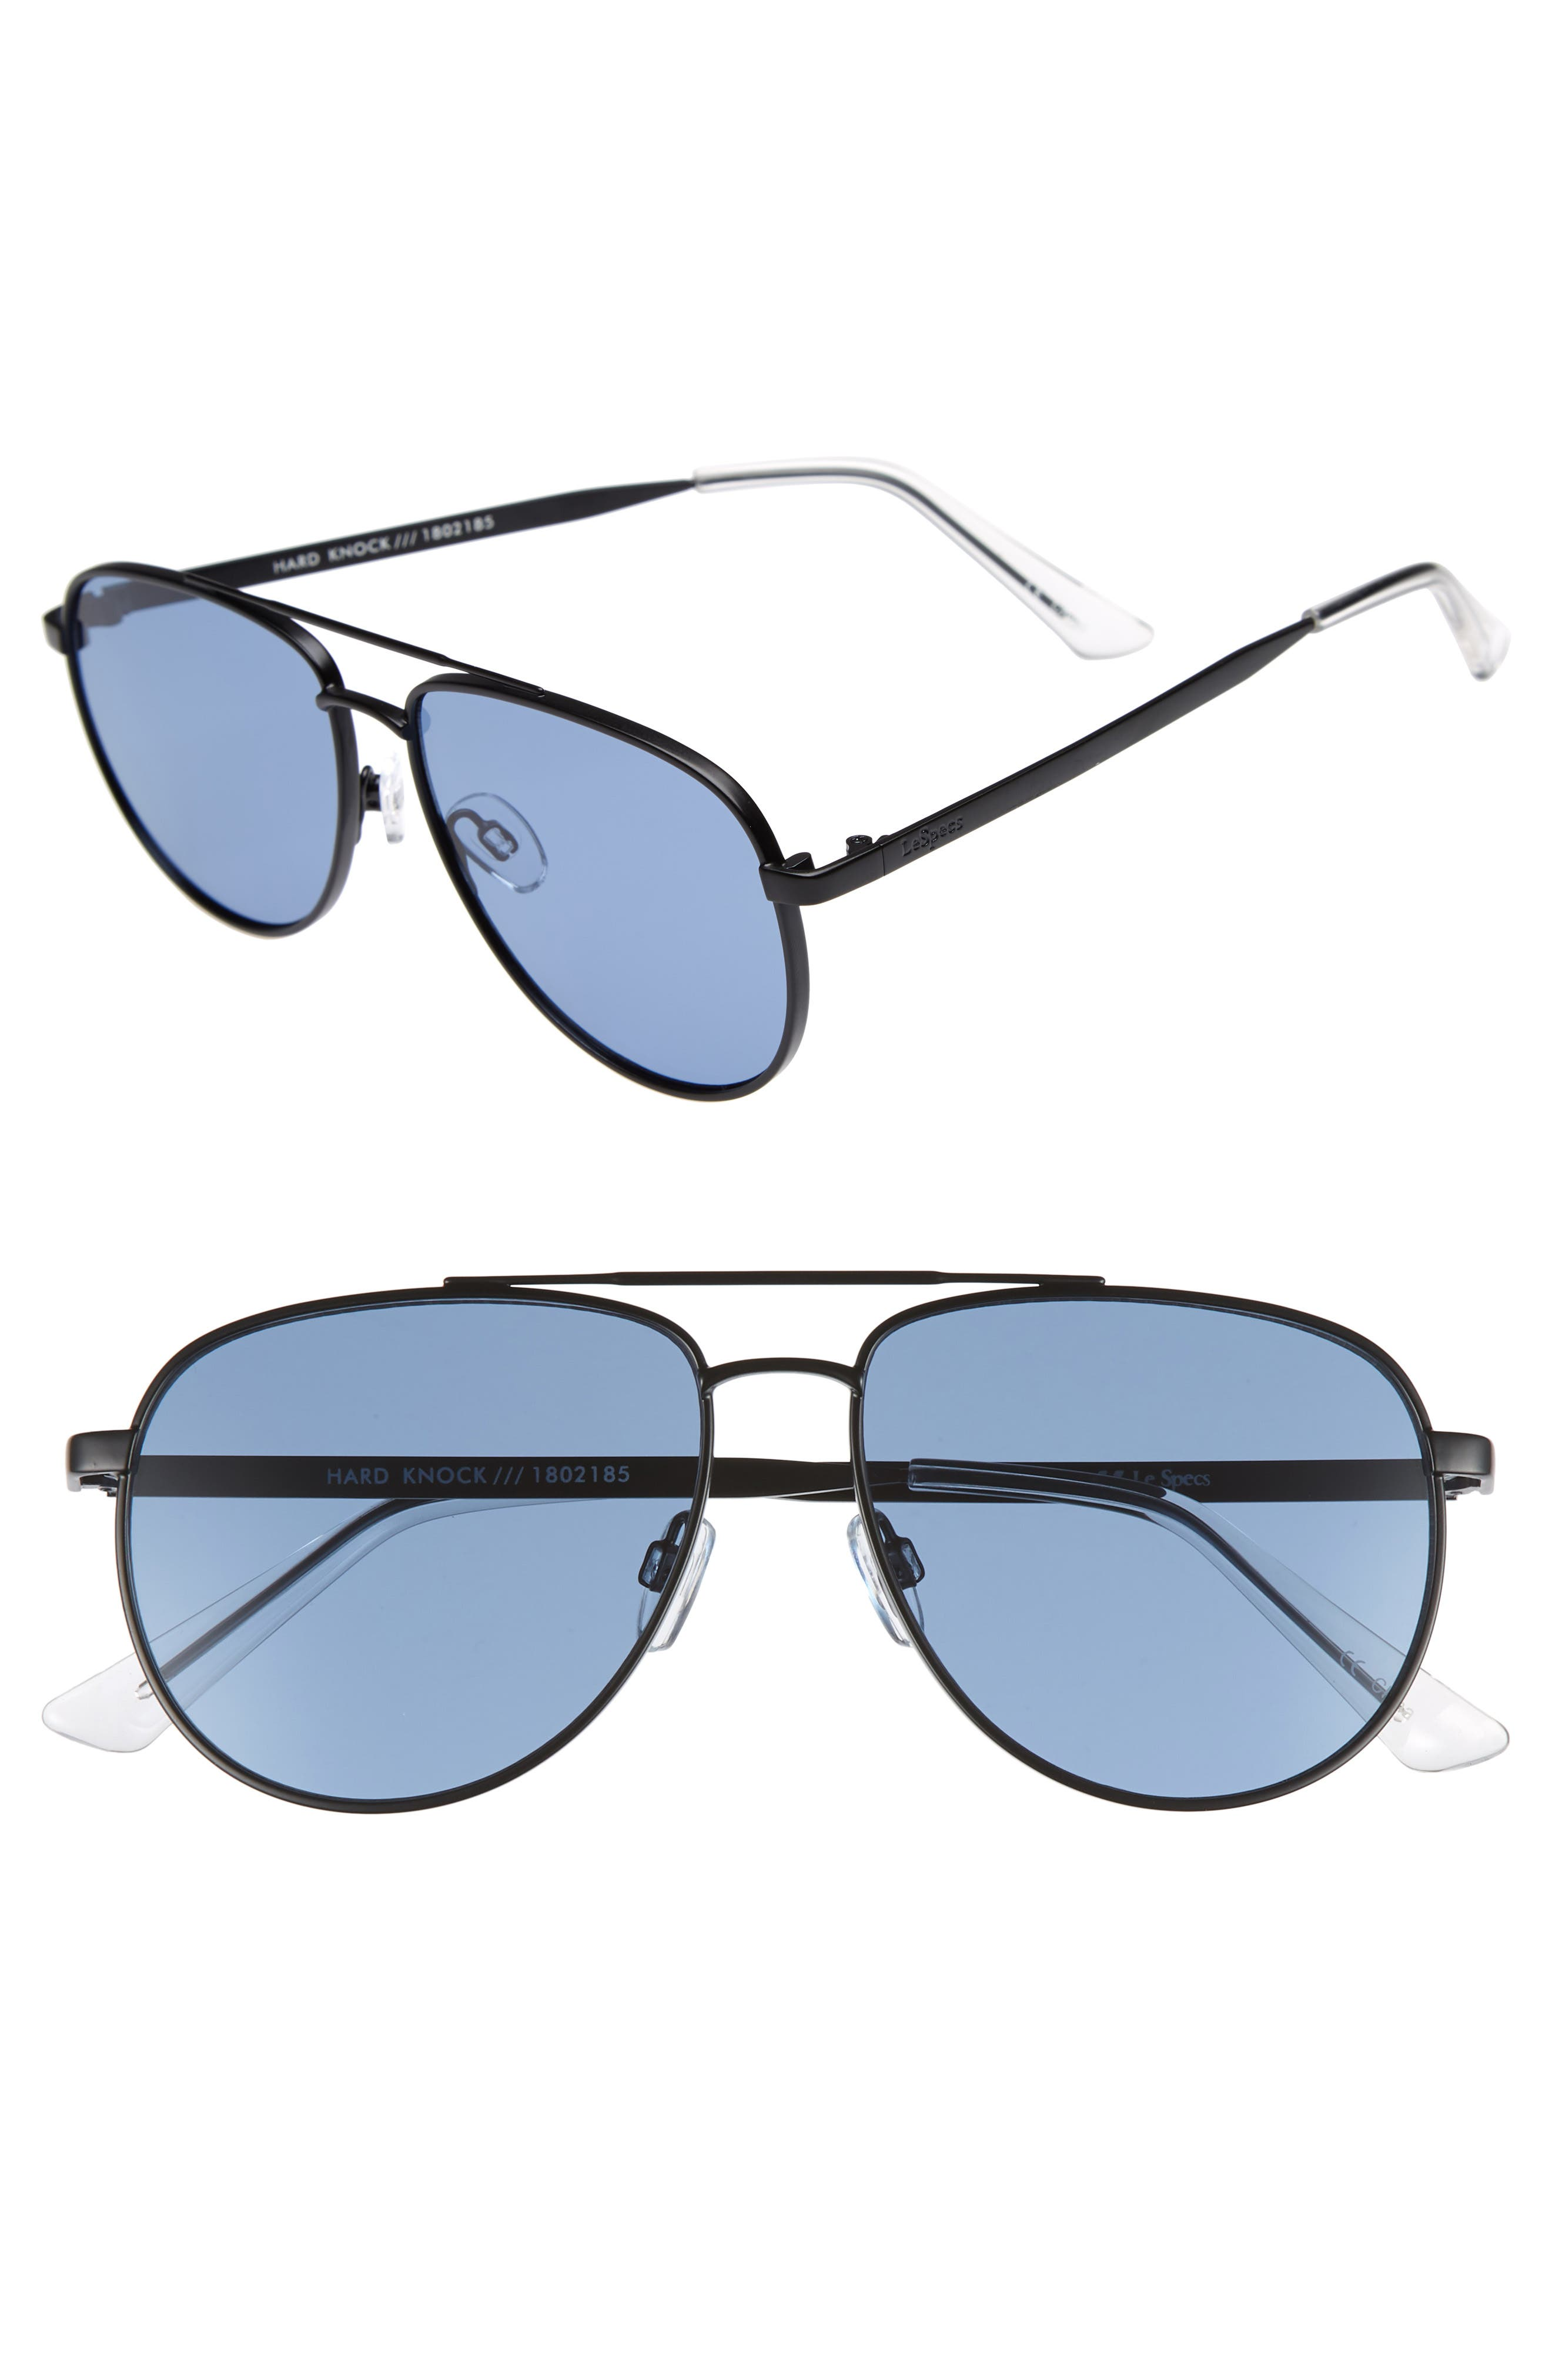 Hard Knock 57mm Aviator Sunglasses,                         Main,                         color, Matte Navy